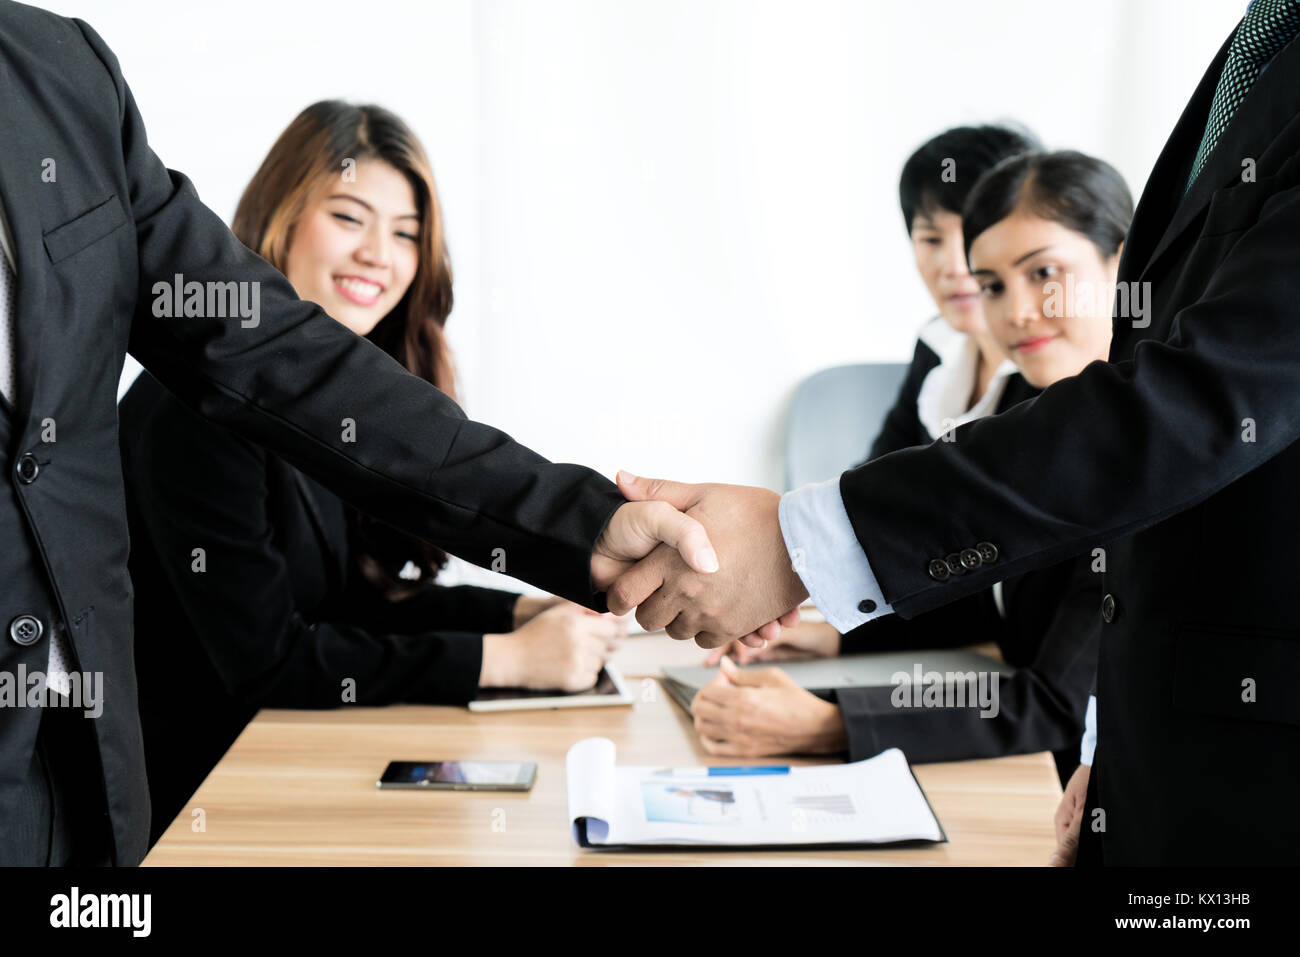 Asian businessman shaking hands in conference room. Business people shaking hands agreement concept. - Stock Image